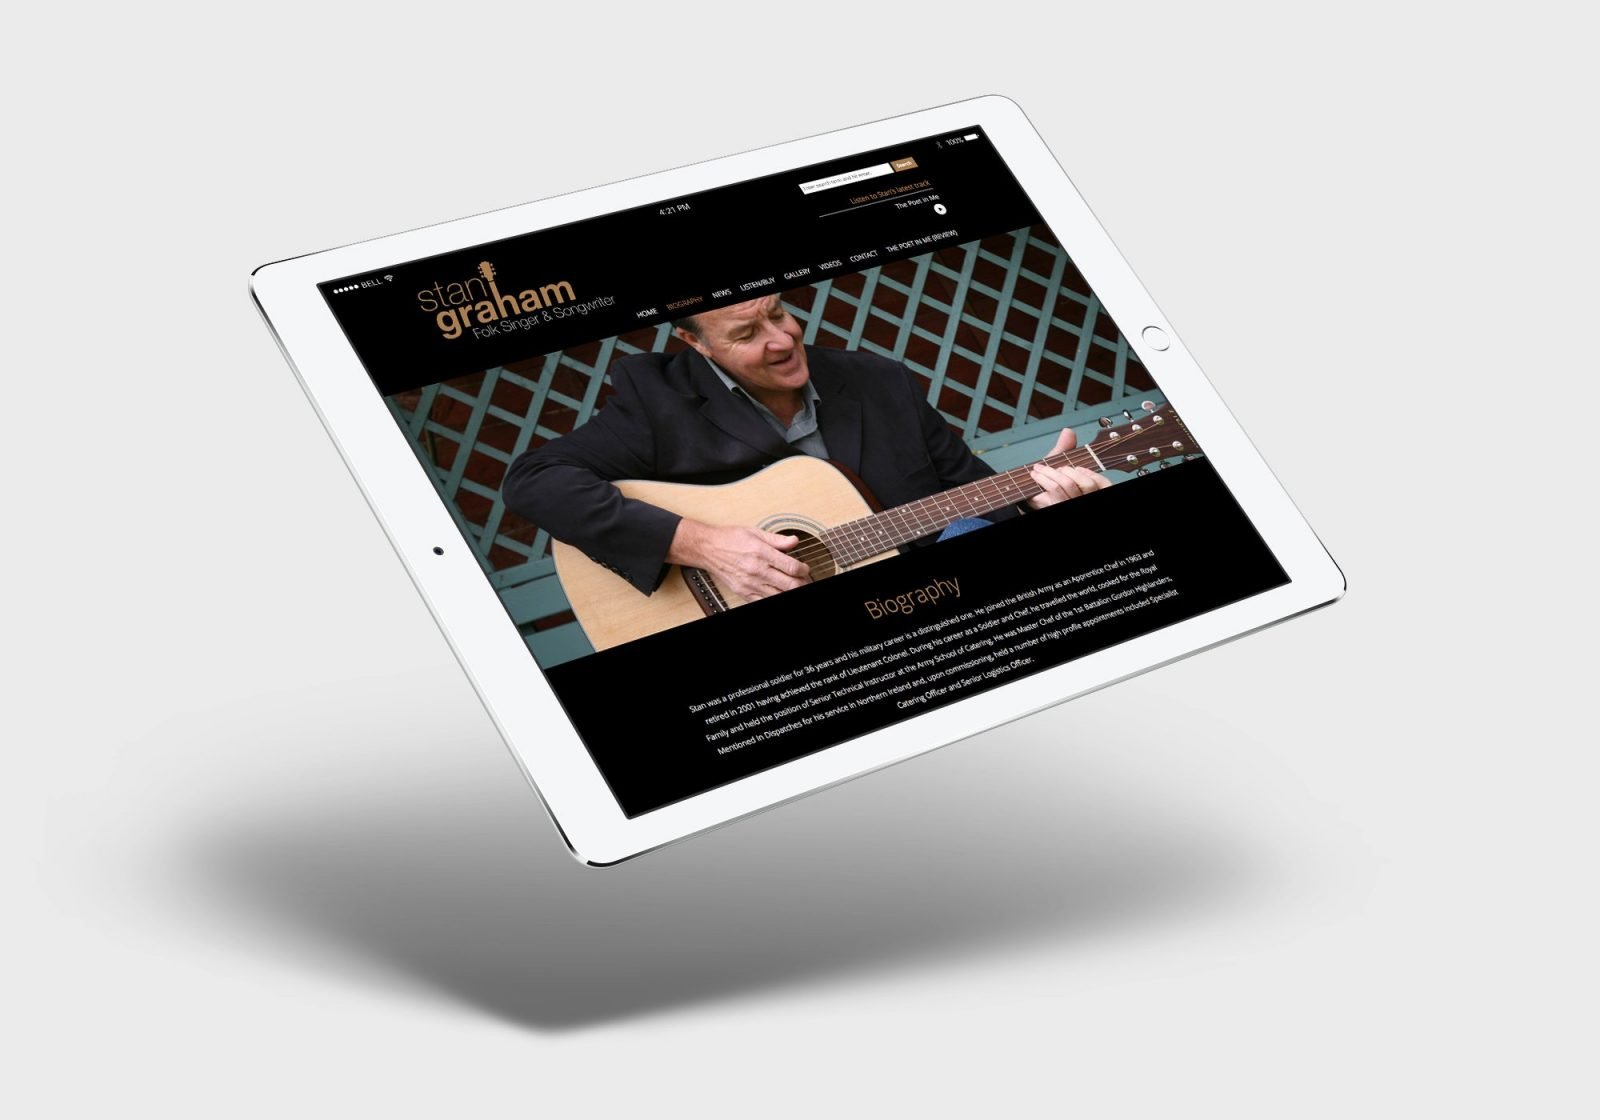 An ipad showing the home page design for Stan Graham, singer songwriter's website